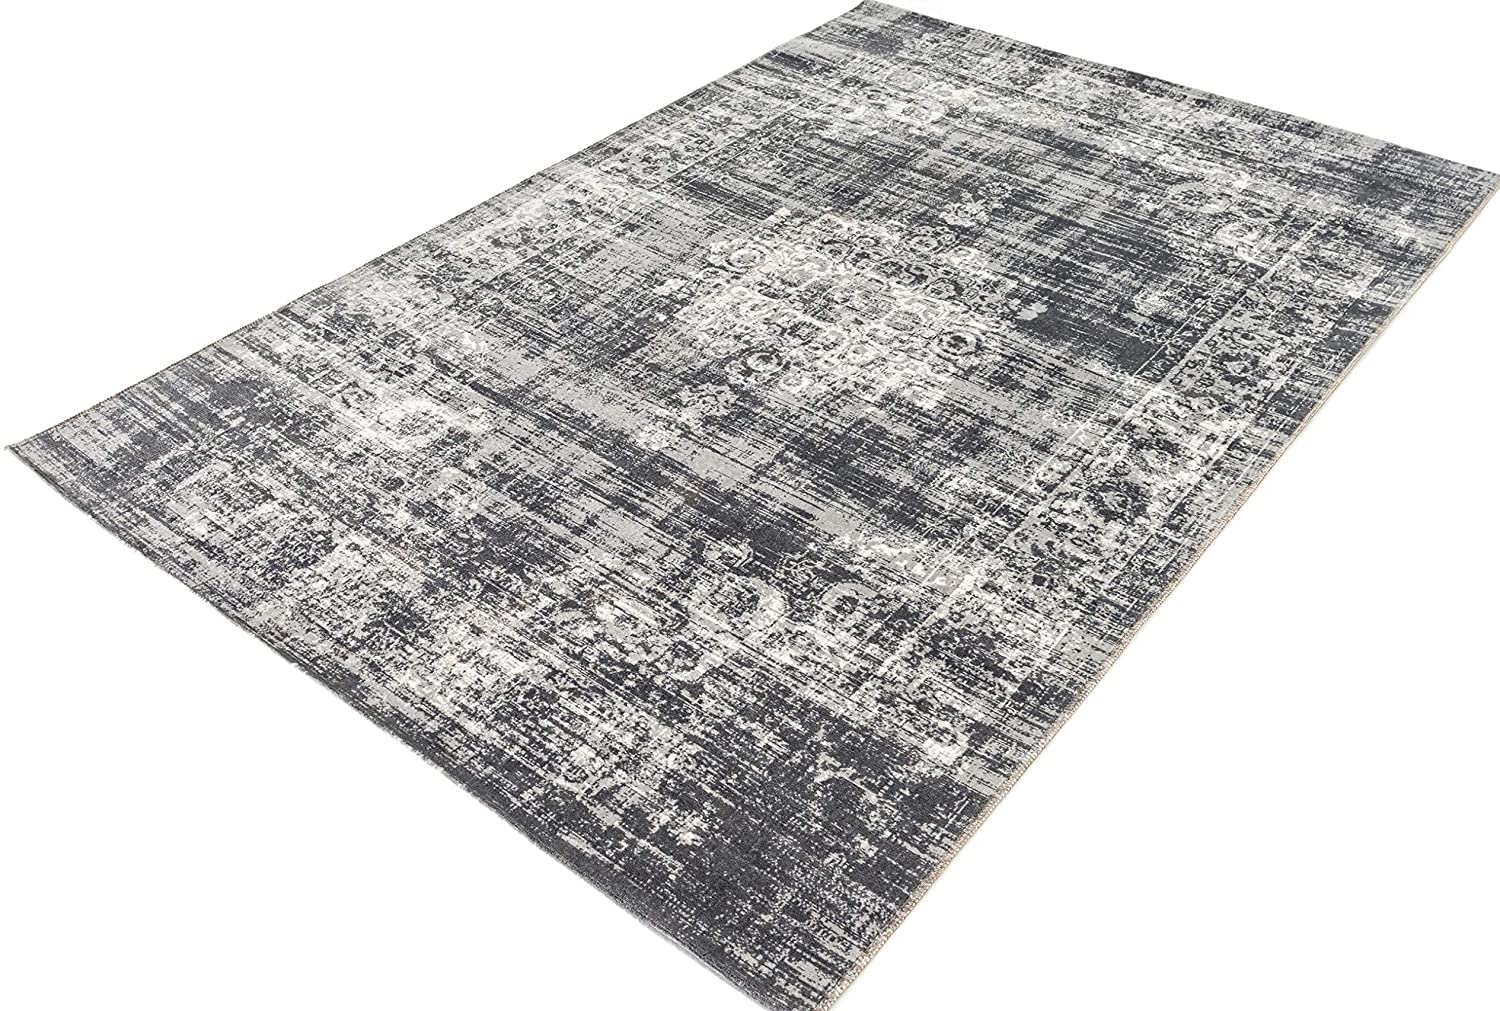 LIFA LIVING Room rugs, Carpet for Kitchen and Living room sizes (Dark Gray, 133x200cm)